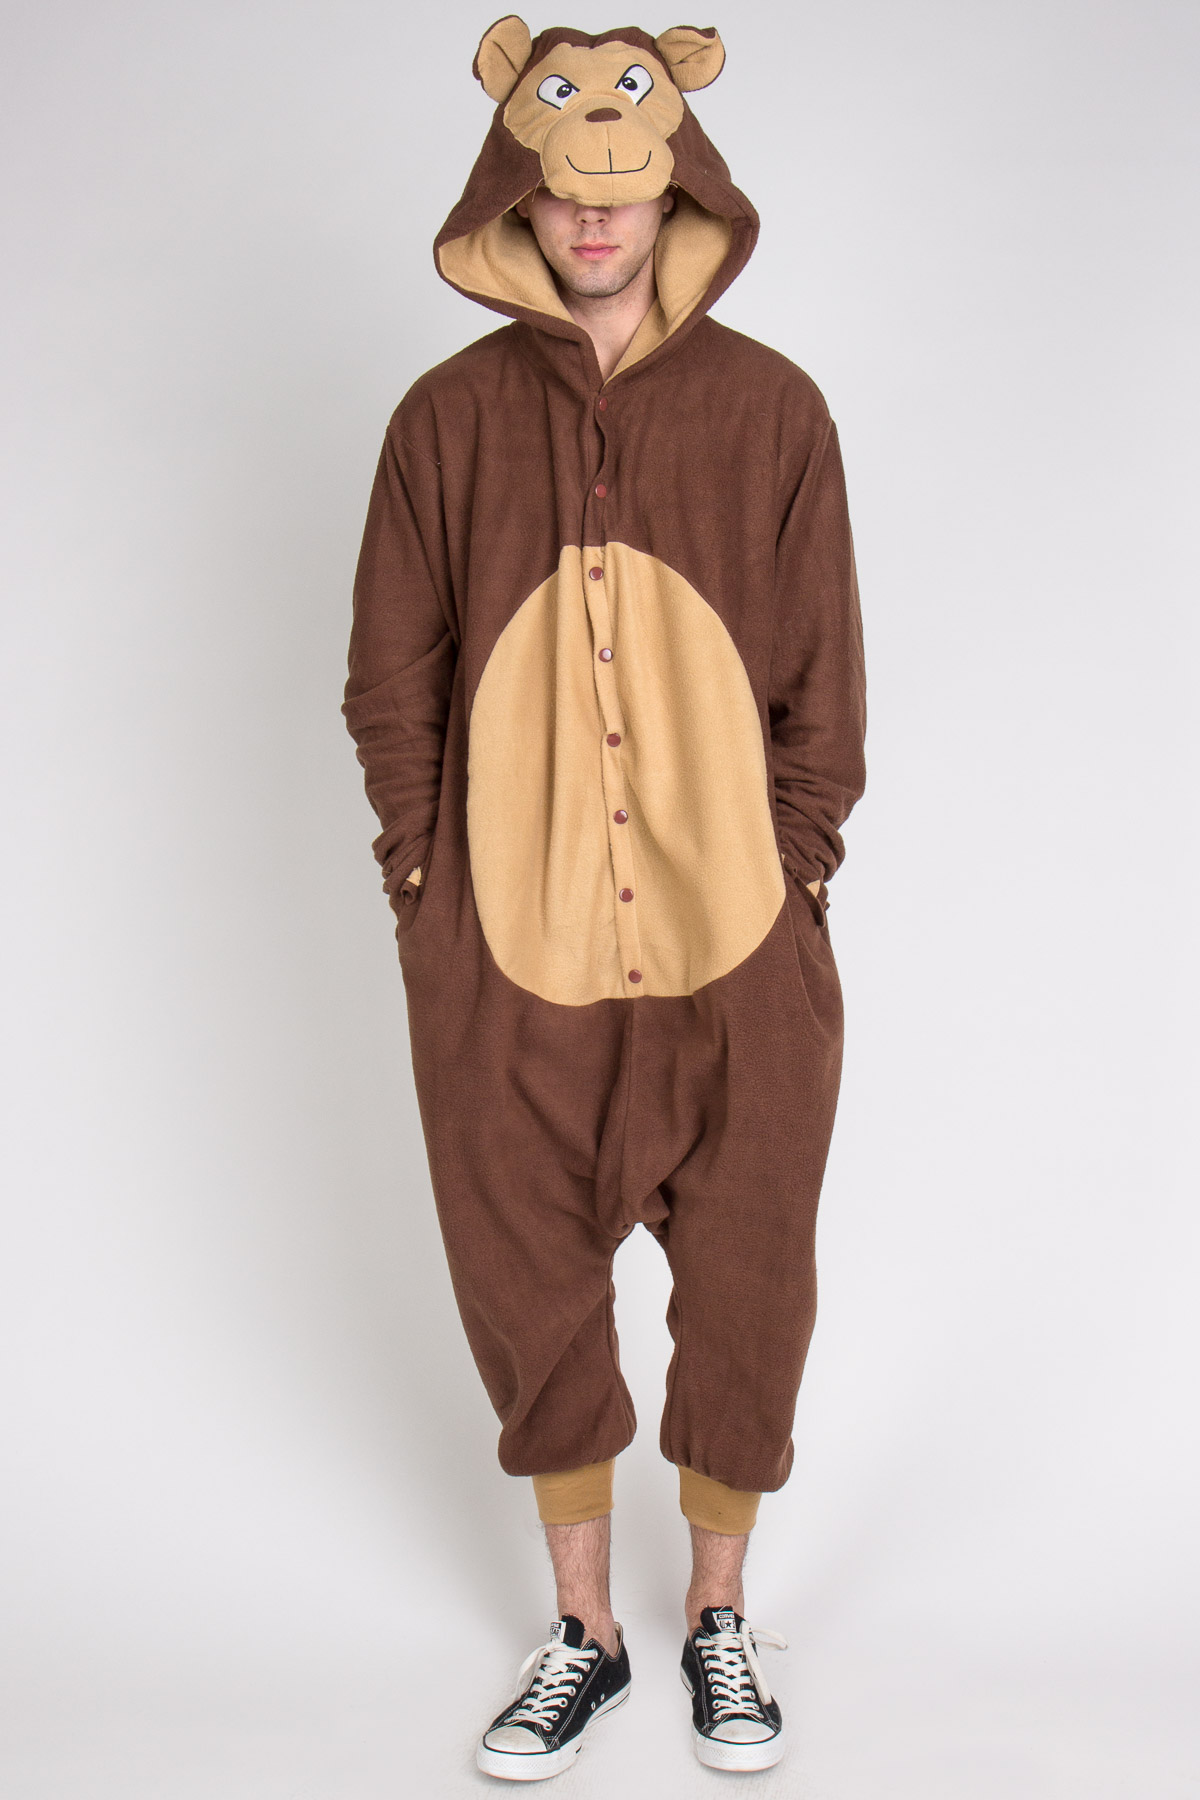 monkey onesie pajamas